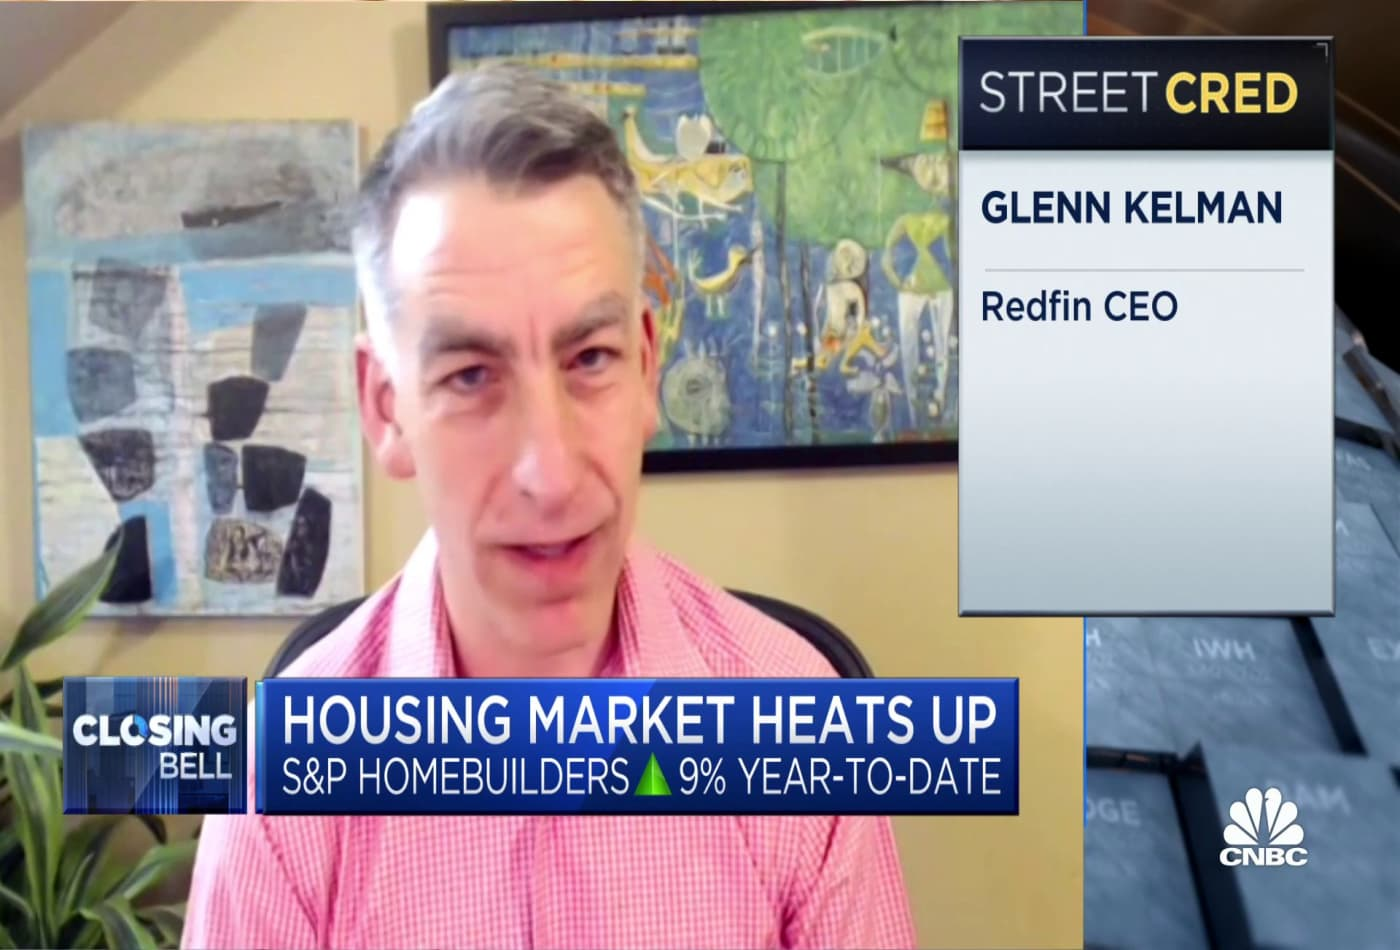 It has been the frothiest market I've ever seen: Redfin CEO on housing market